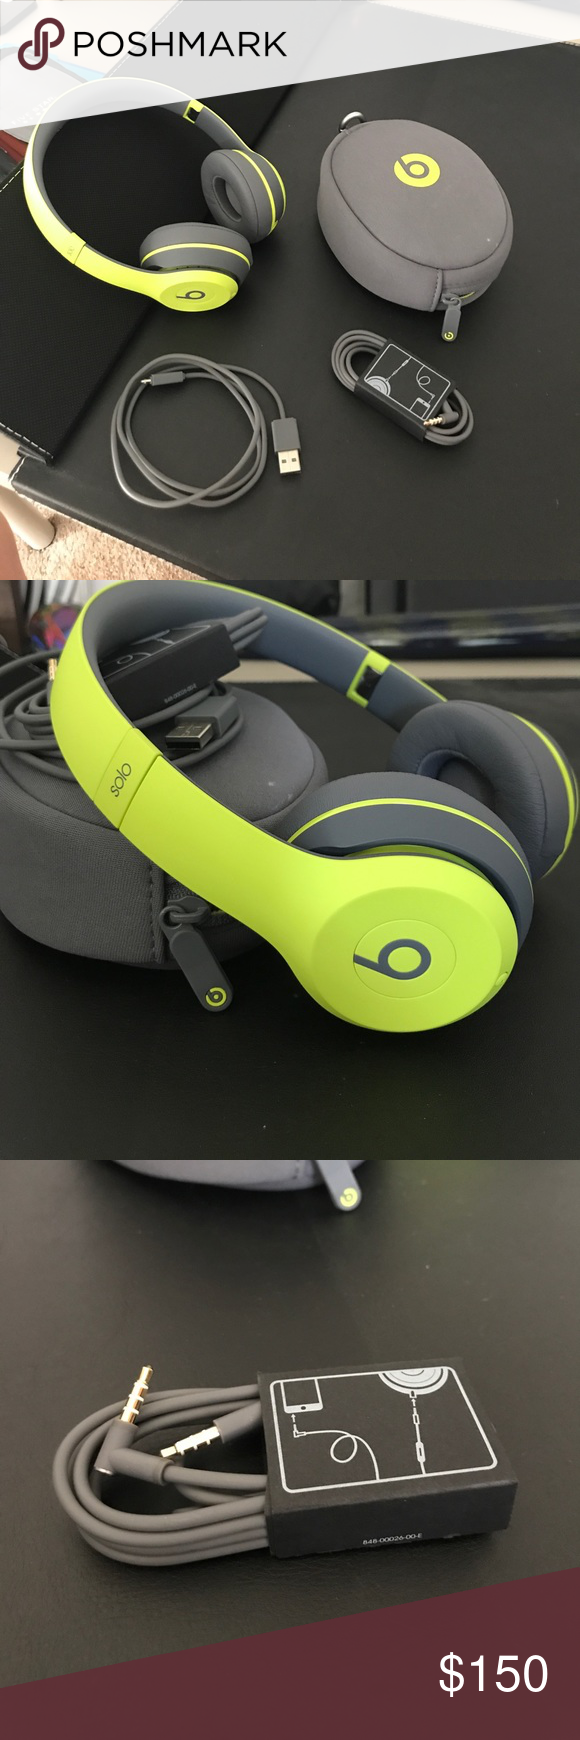 Beats Solo Wireless Headphones Grey And Neon Green Great Condition